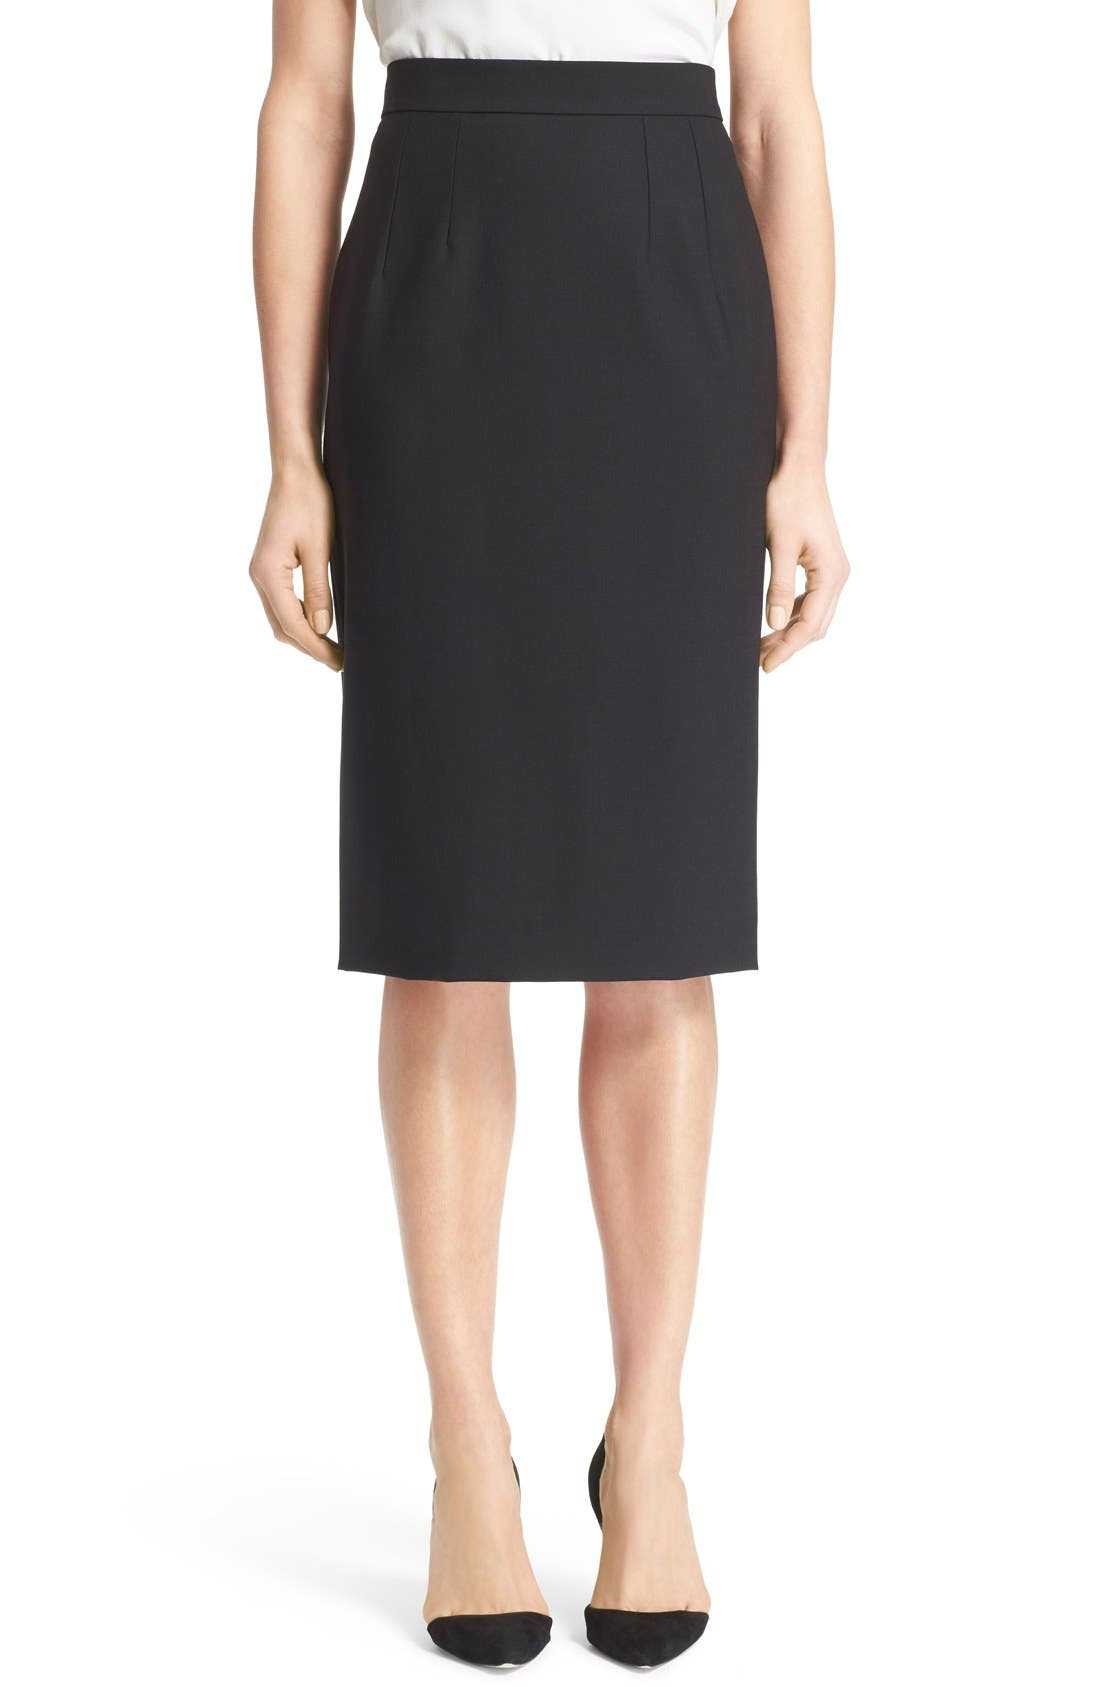 Alternate Image 1 Selected - Dolce&Gabbana Stretch Wool Pencil Skirt